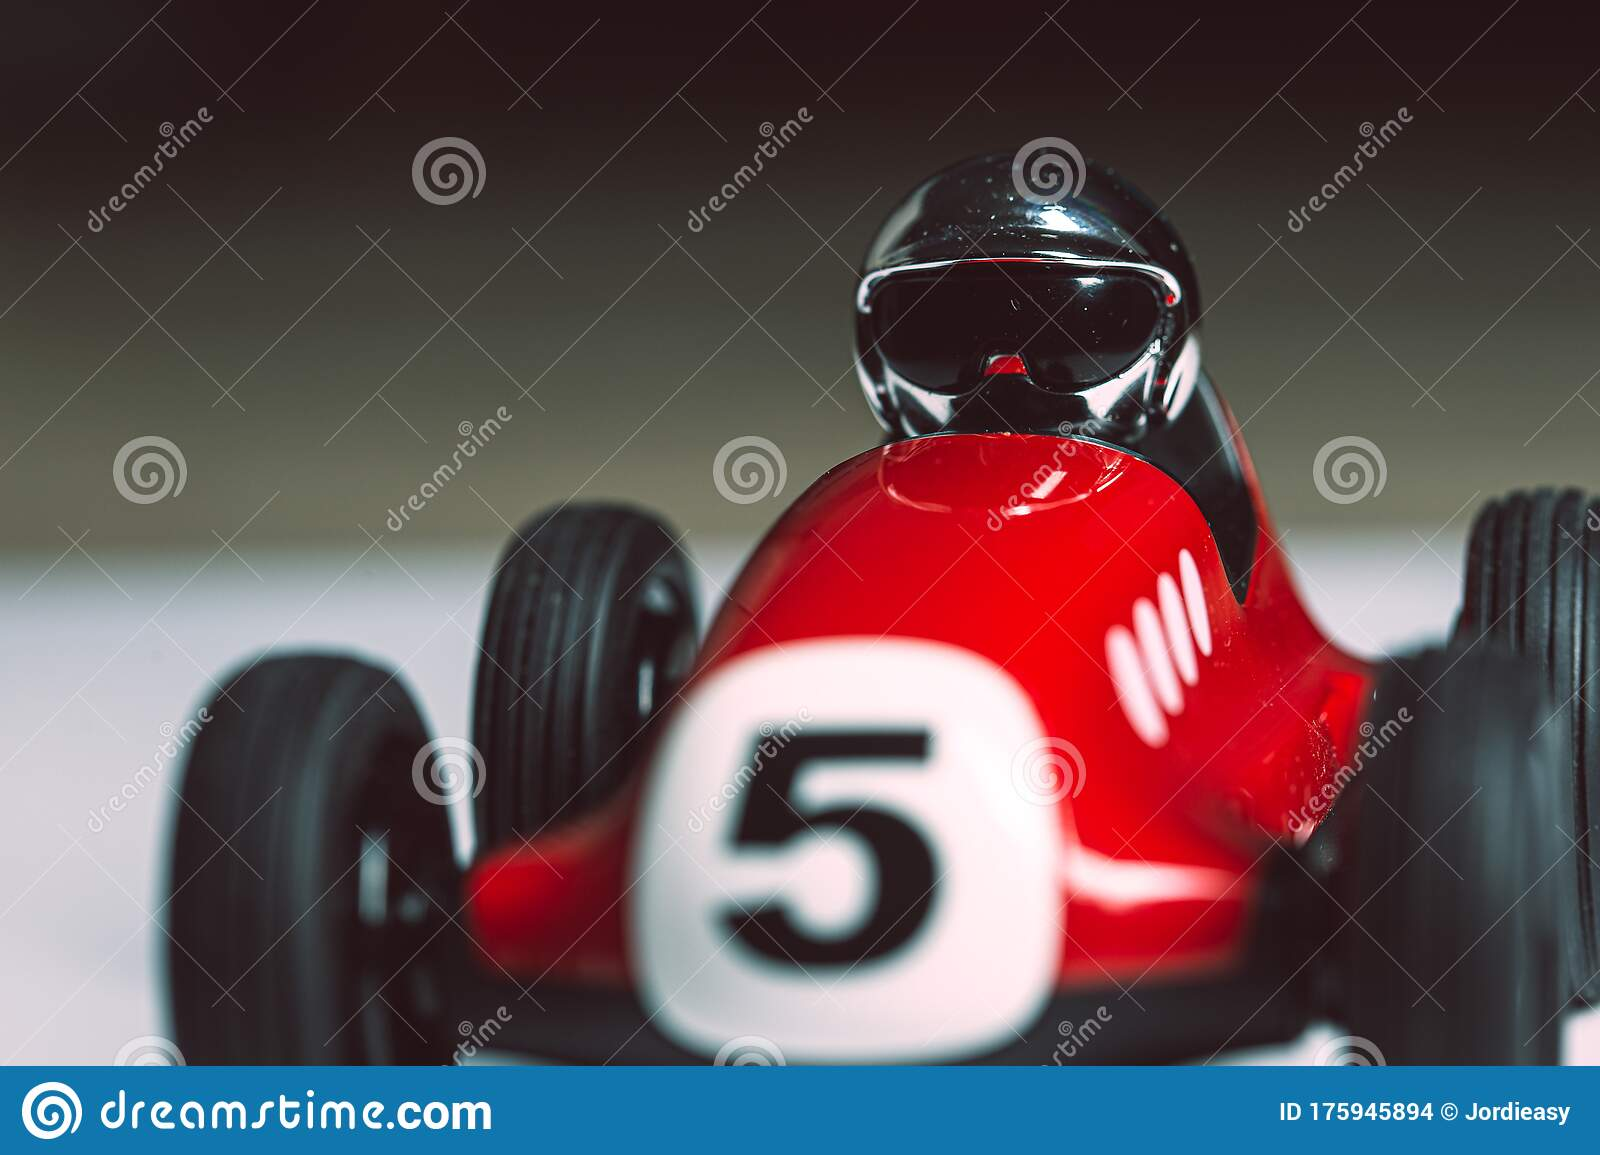 Bright Silver Helmet On A Racing Driver On A Red Toy Vintage Racing Car Stock Photo Image Of Silver Bright 175945894